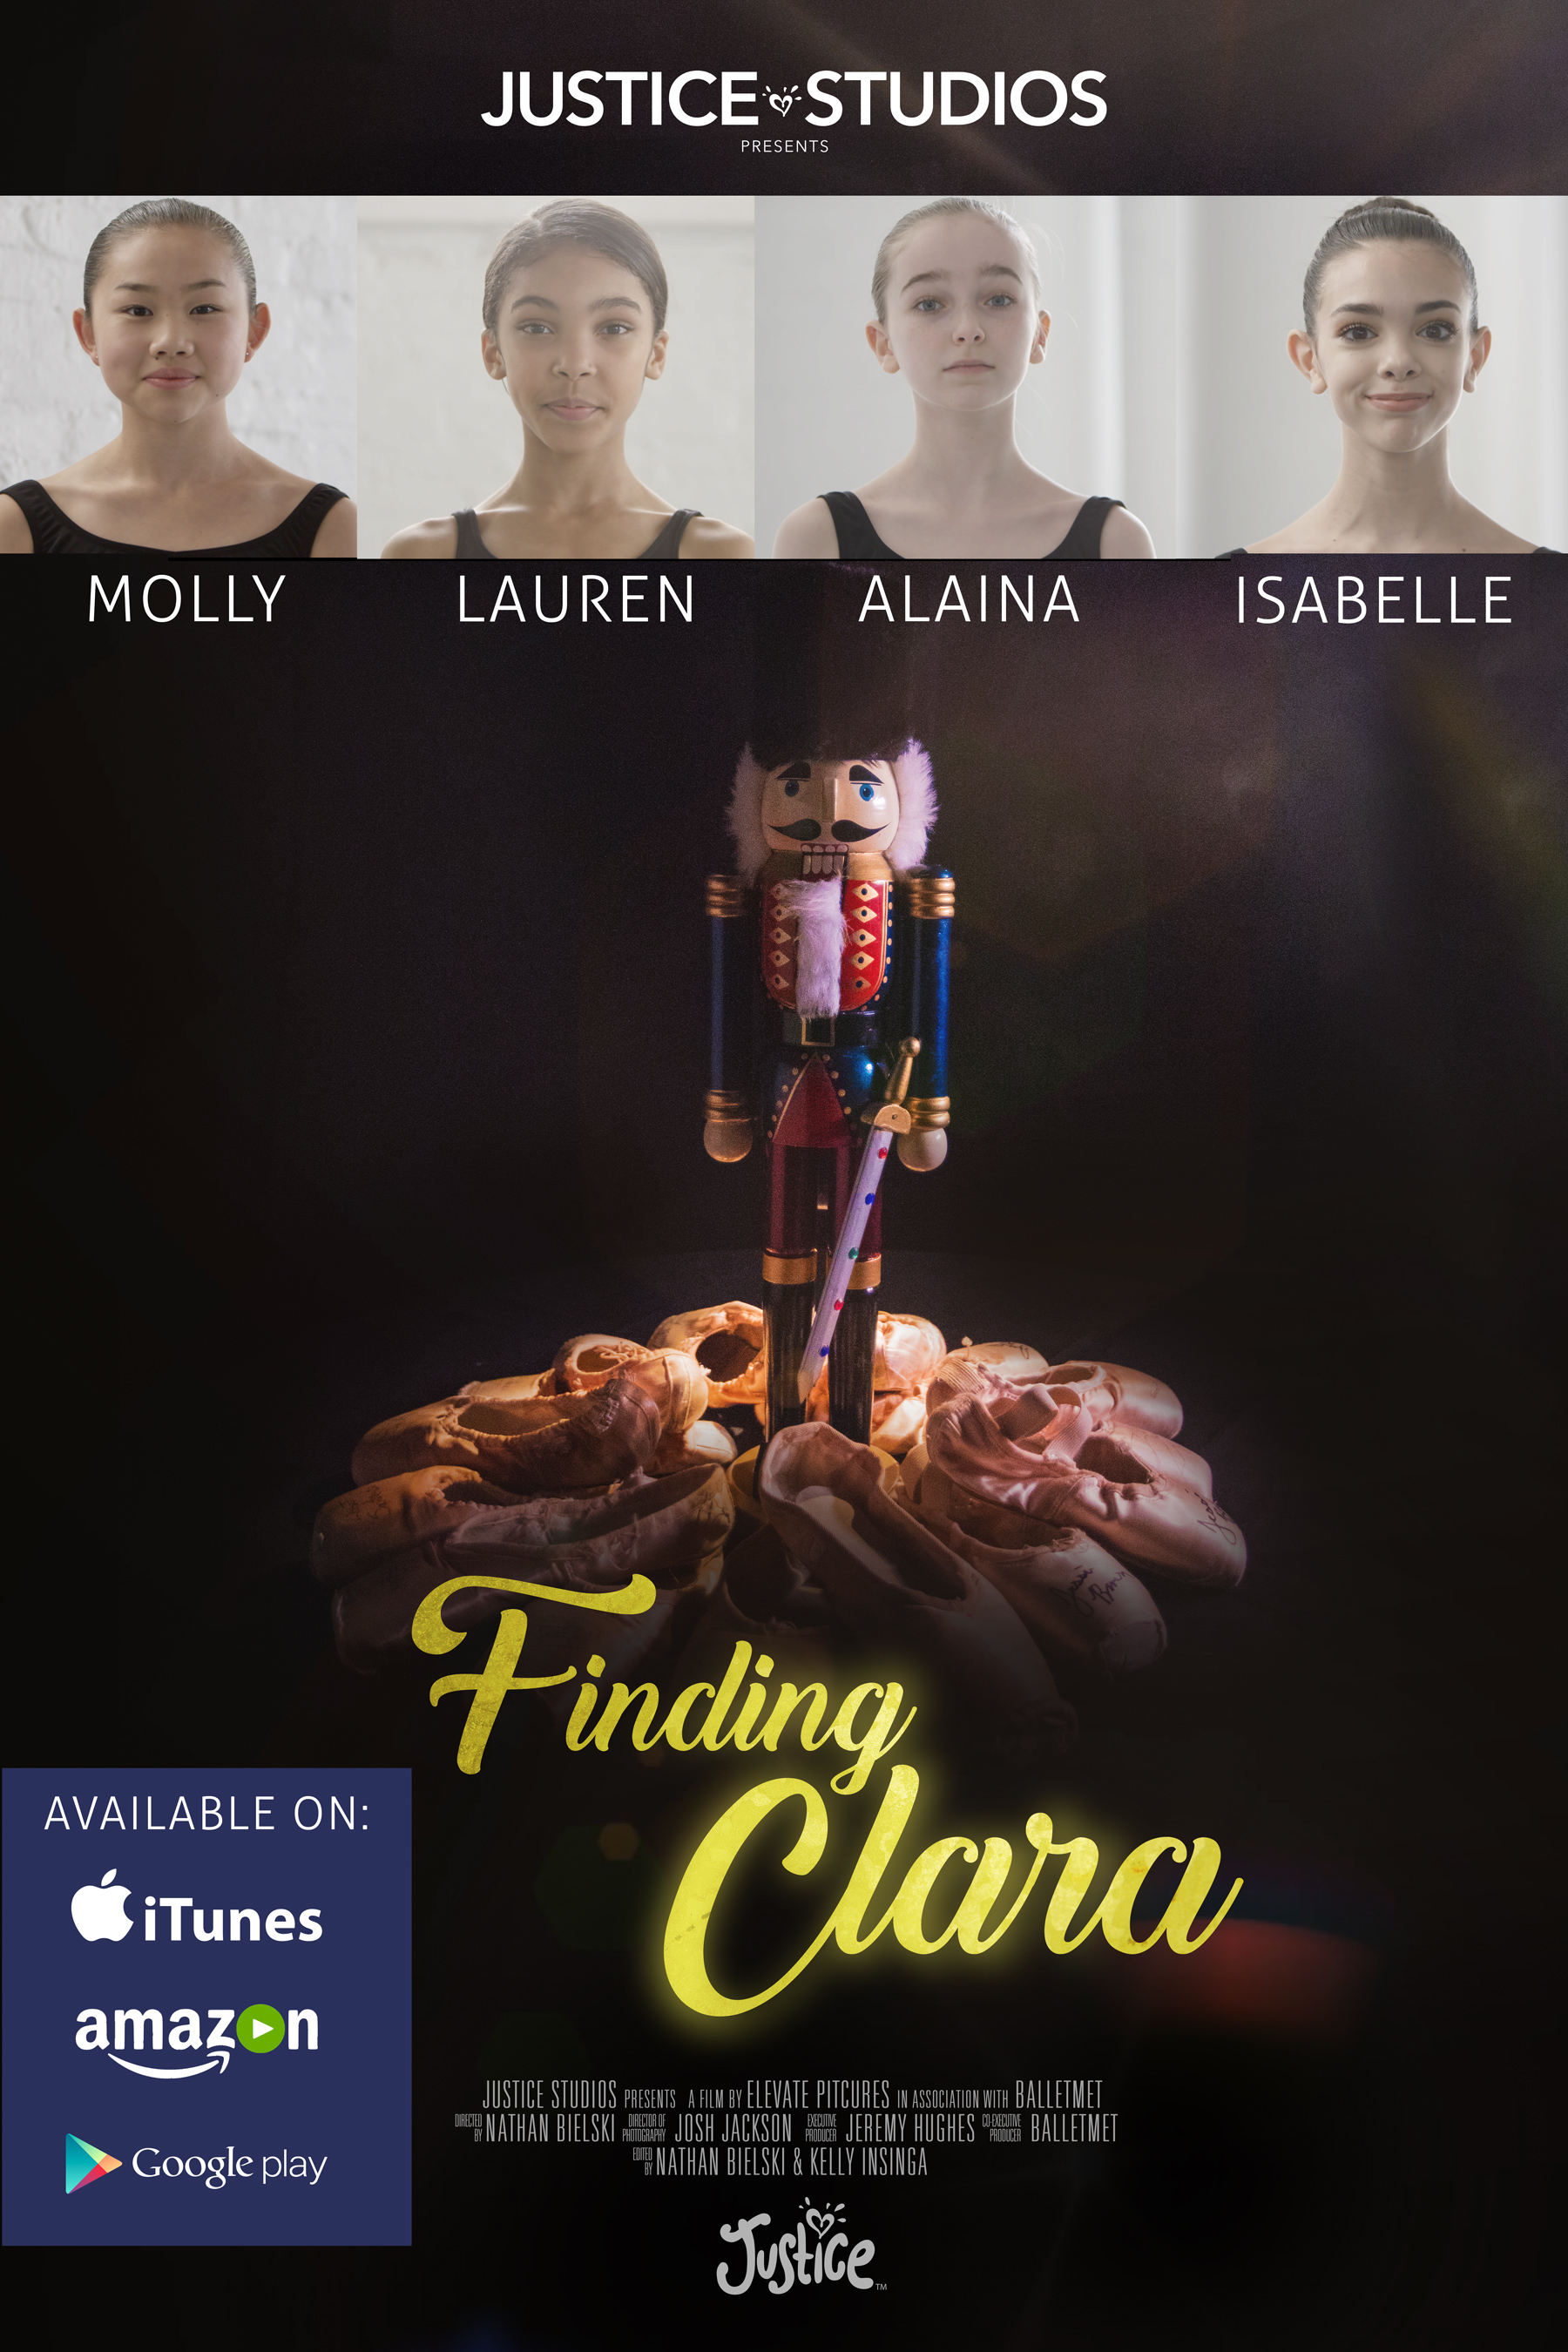 Copy of FindingClara_MoviePoster_R01